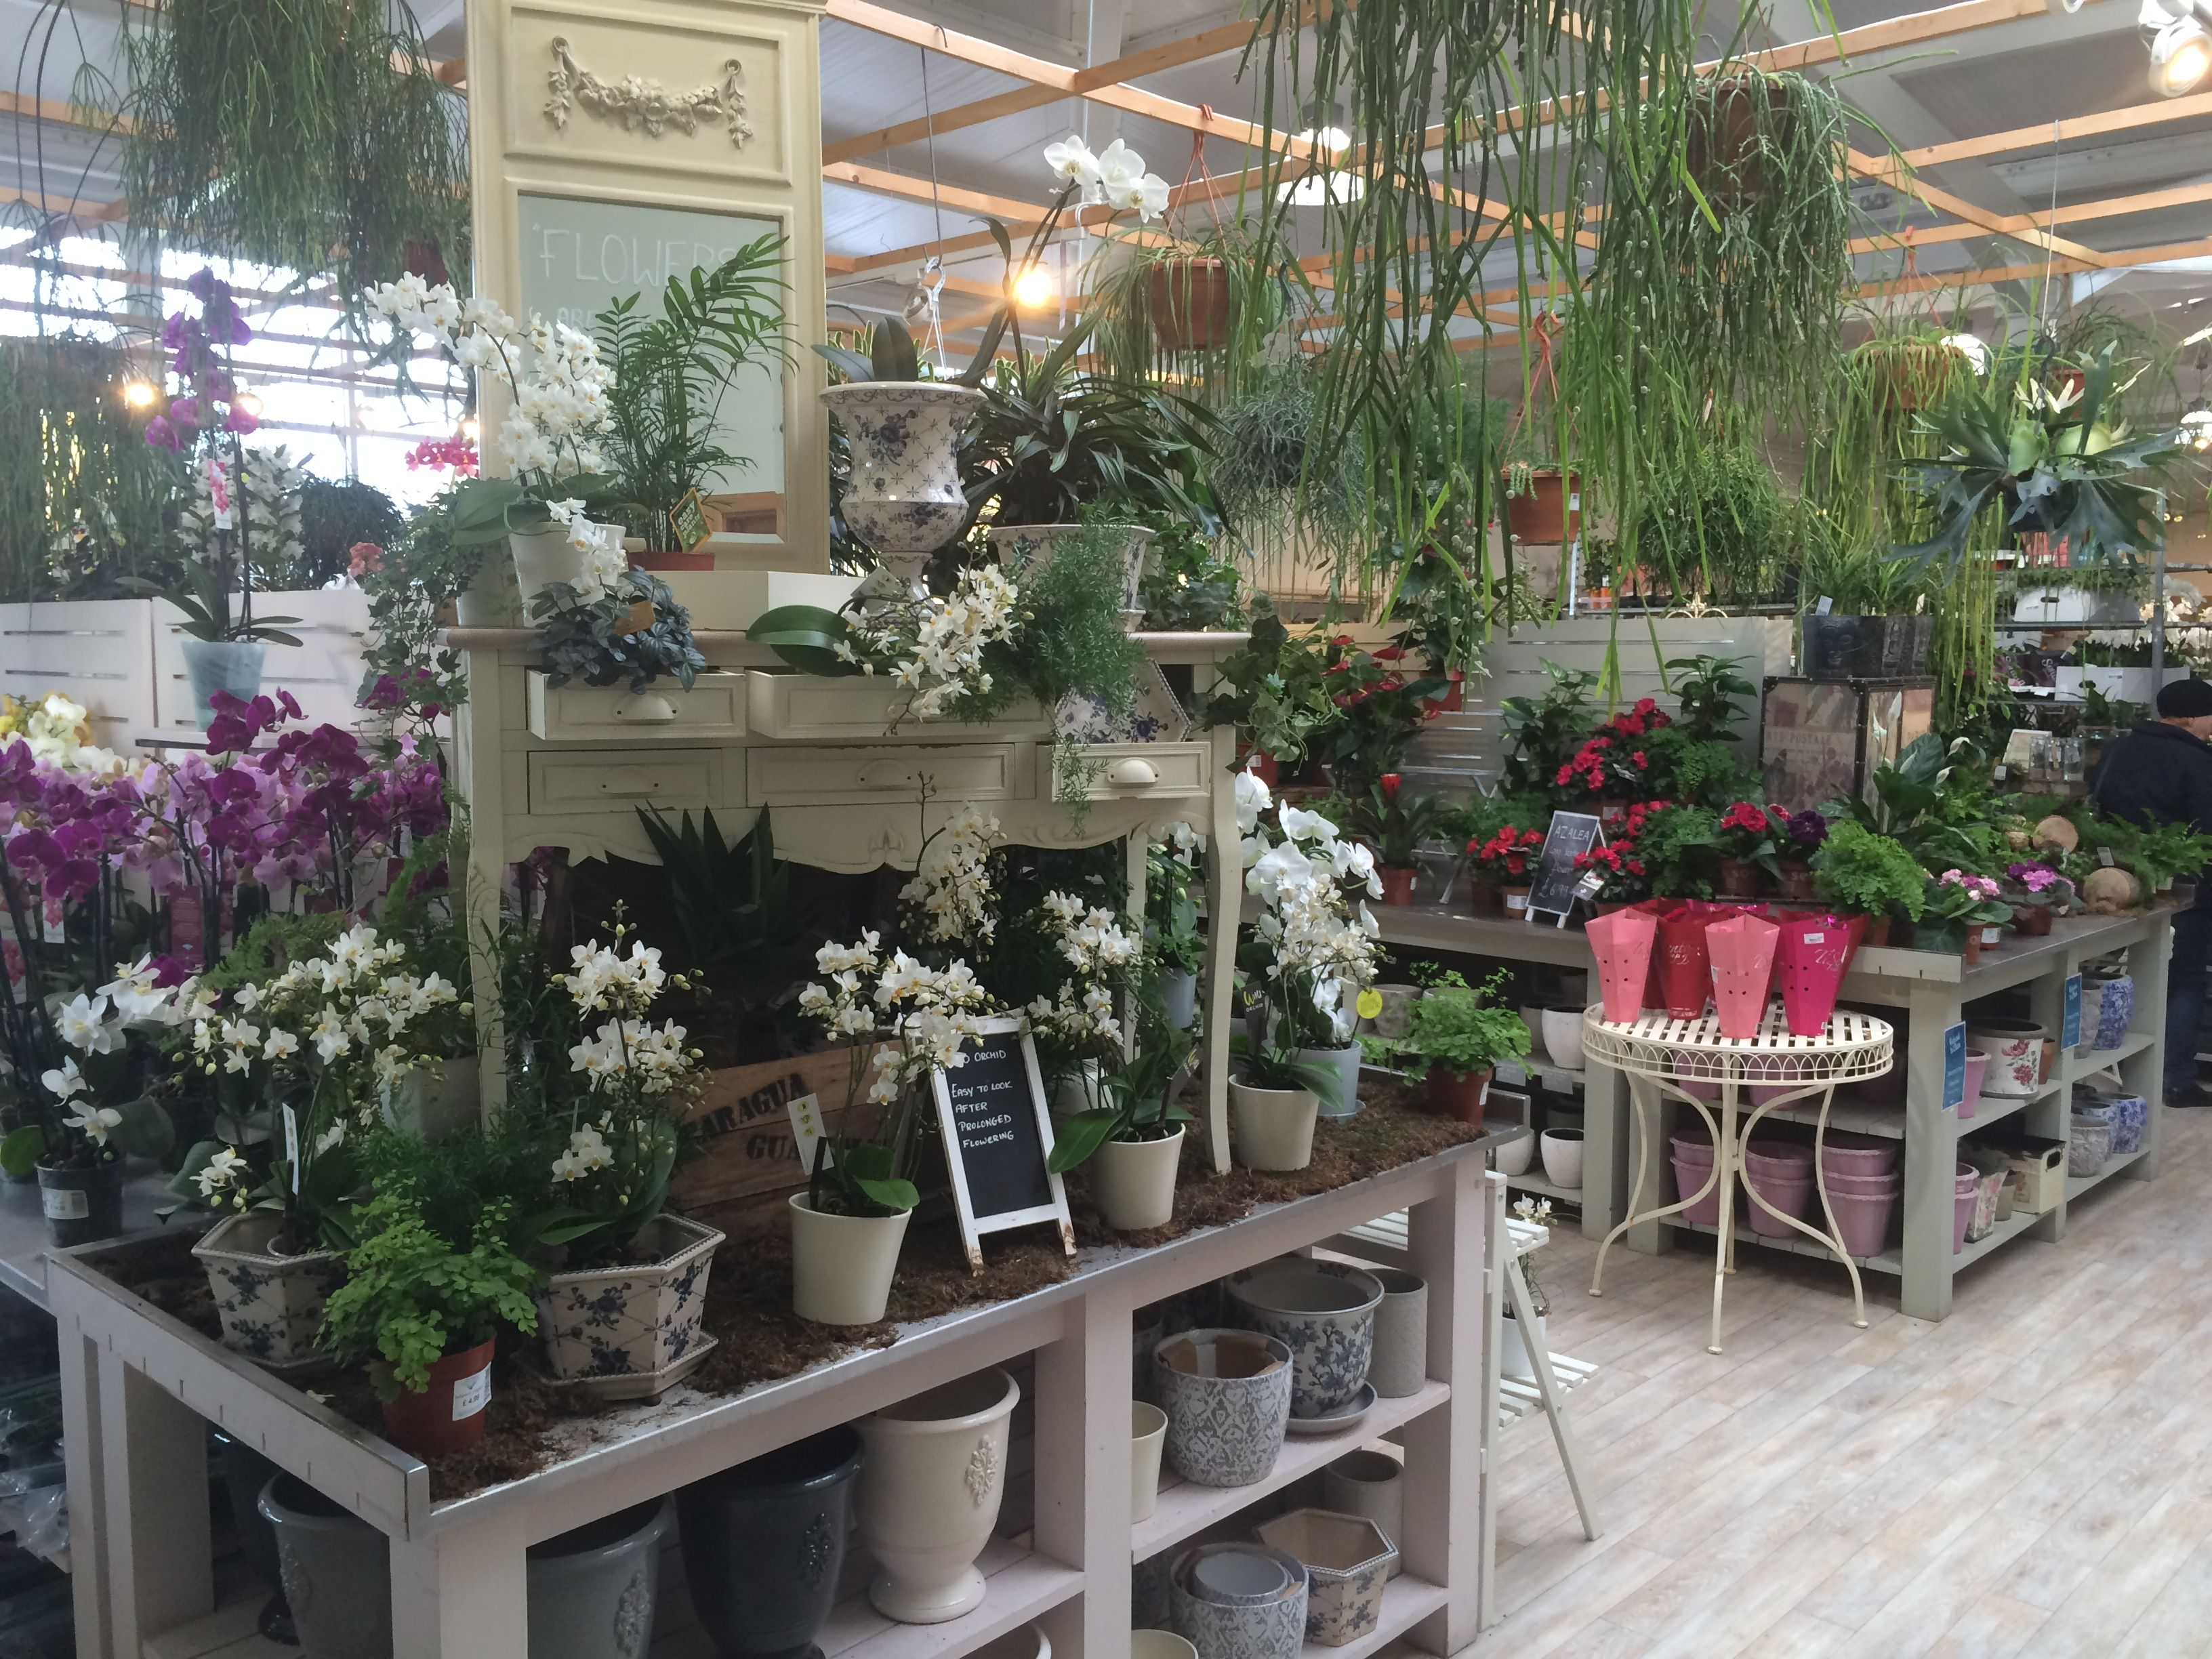 House Plant Display At Redfields Garden Centre Part Of The Blue Diamond Group November 2016 Garden Center Garden Center Displays Plants